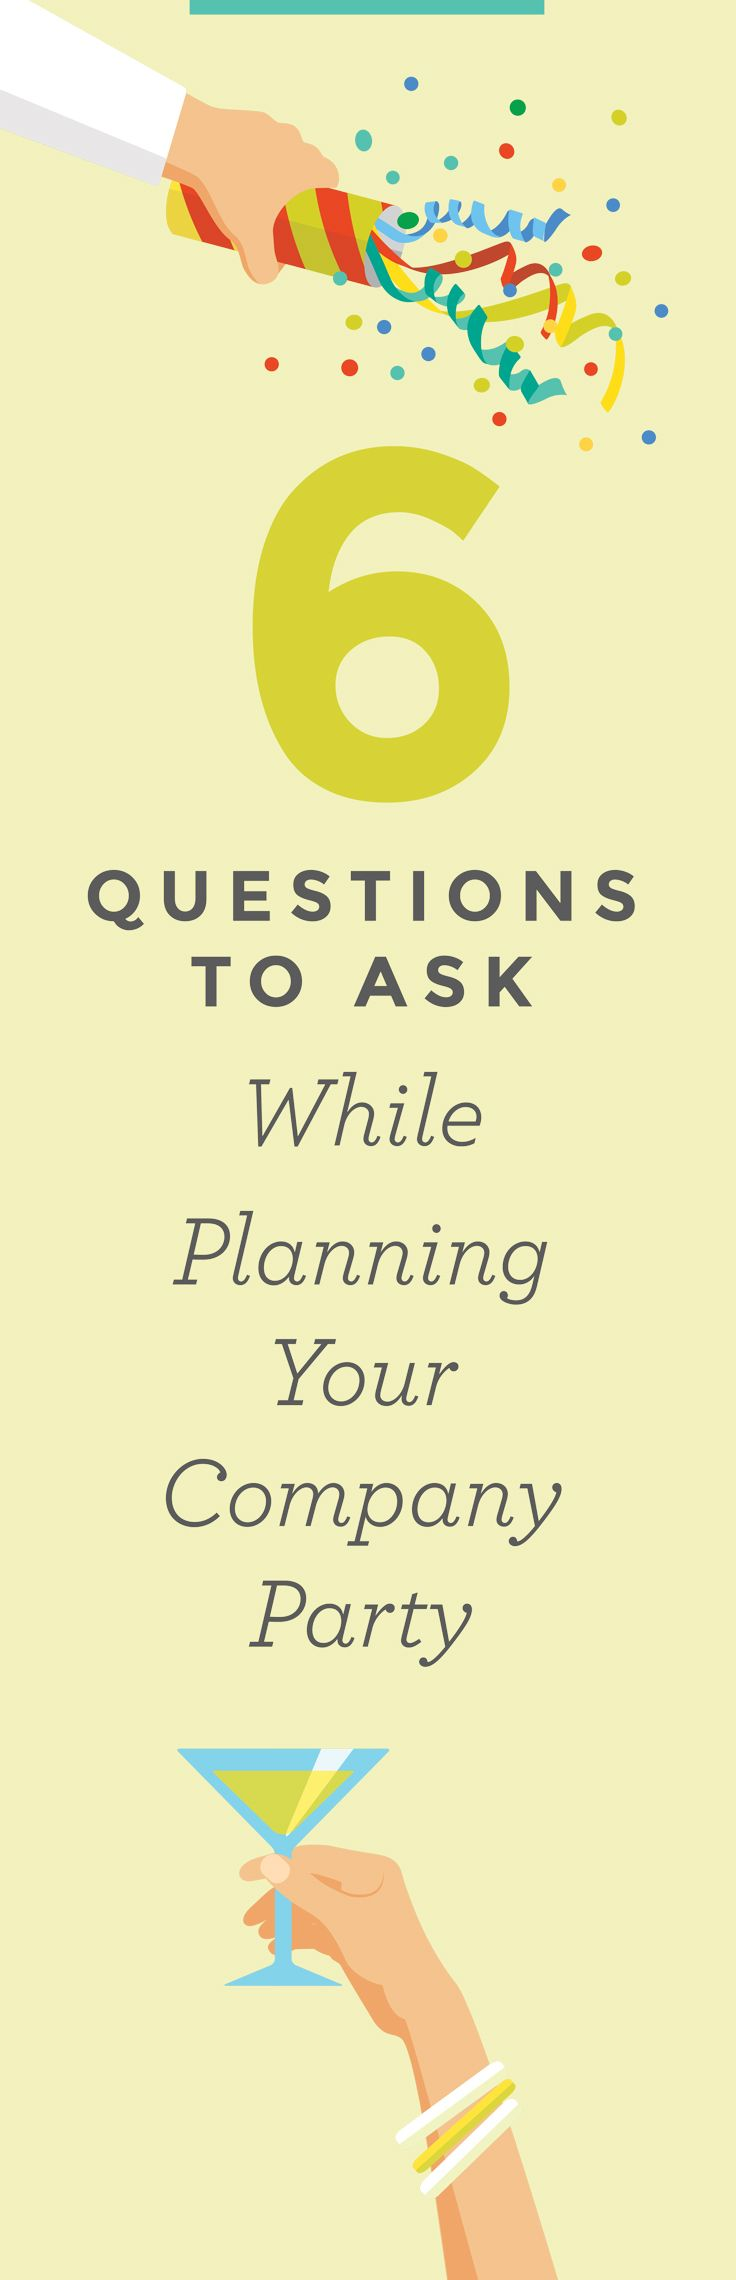 We talked to a team of our expert event planners, and they came up with 6 vital questions to ask when planning your next company gathering - whether it be gala or shindig. Write these down, or pin for later! More on the Hornblower Cruises and Events blog.